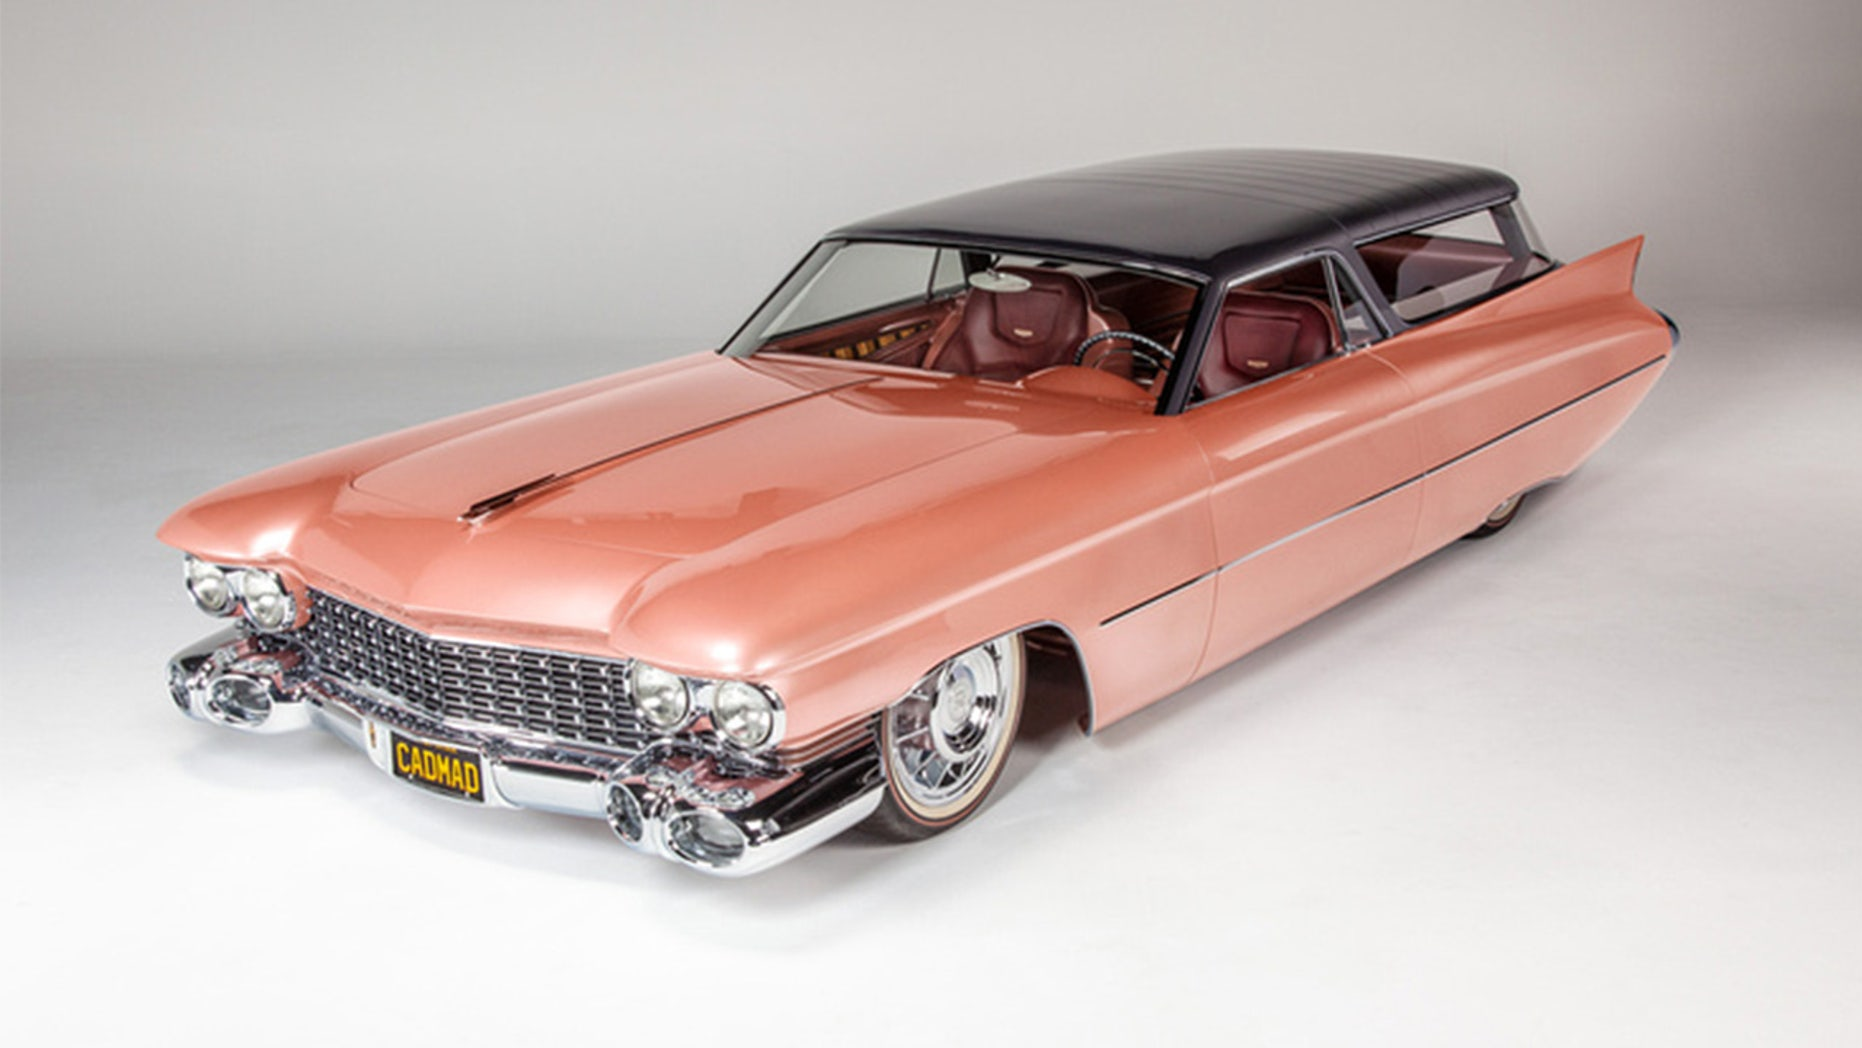 1959 Cadillac station wagon wins Ridler Award for best hot rod